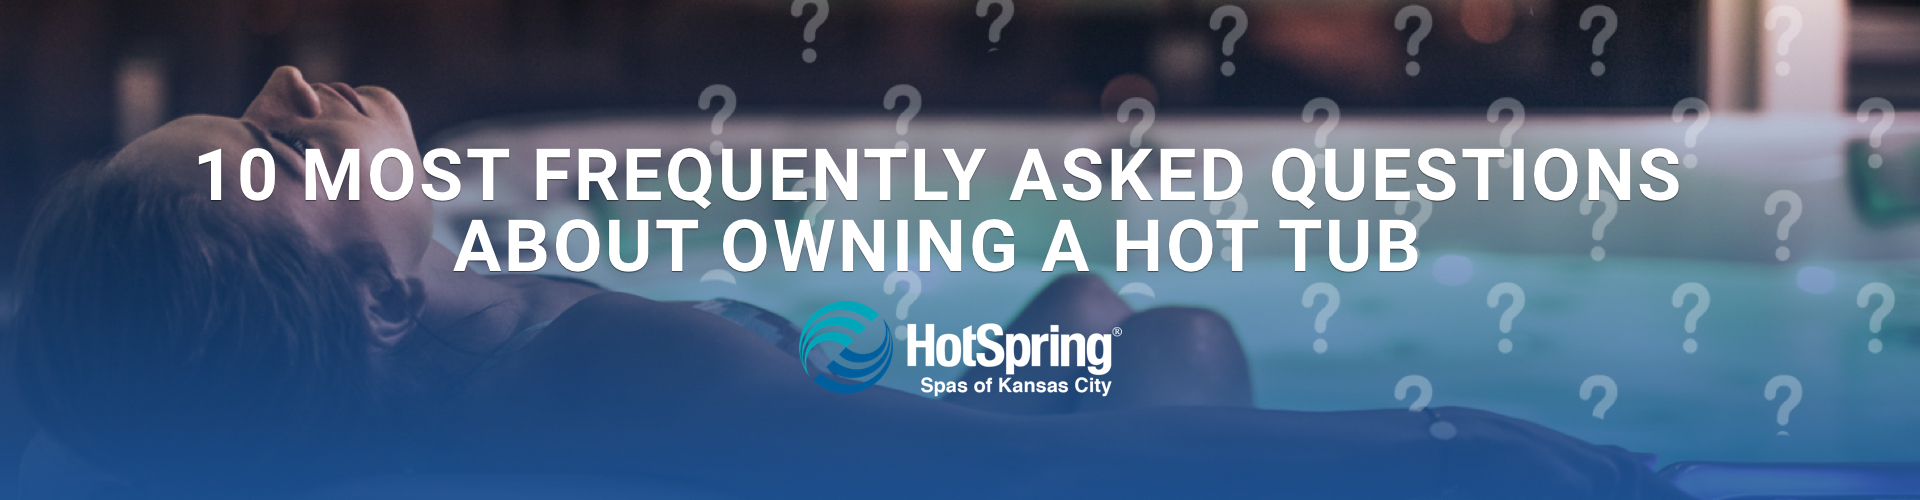 10 Most Frequently Asked Questions About Owning a Hot Tub